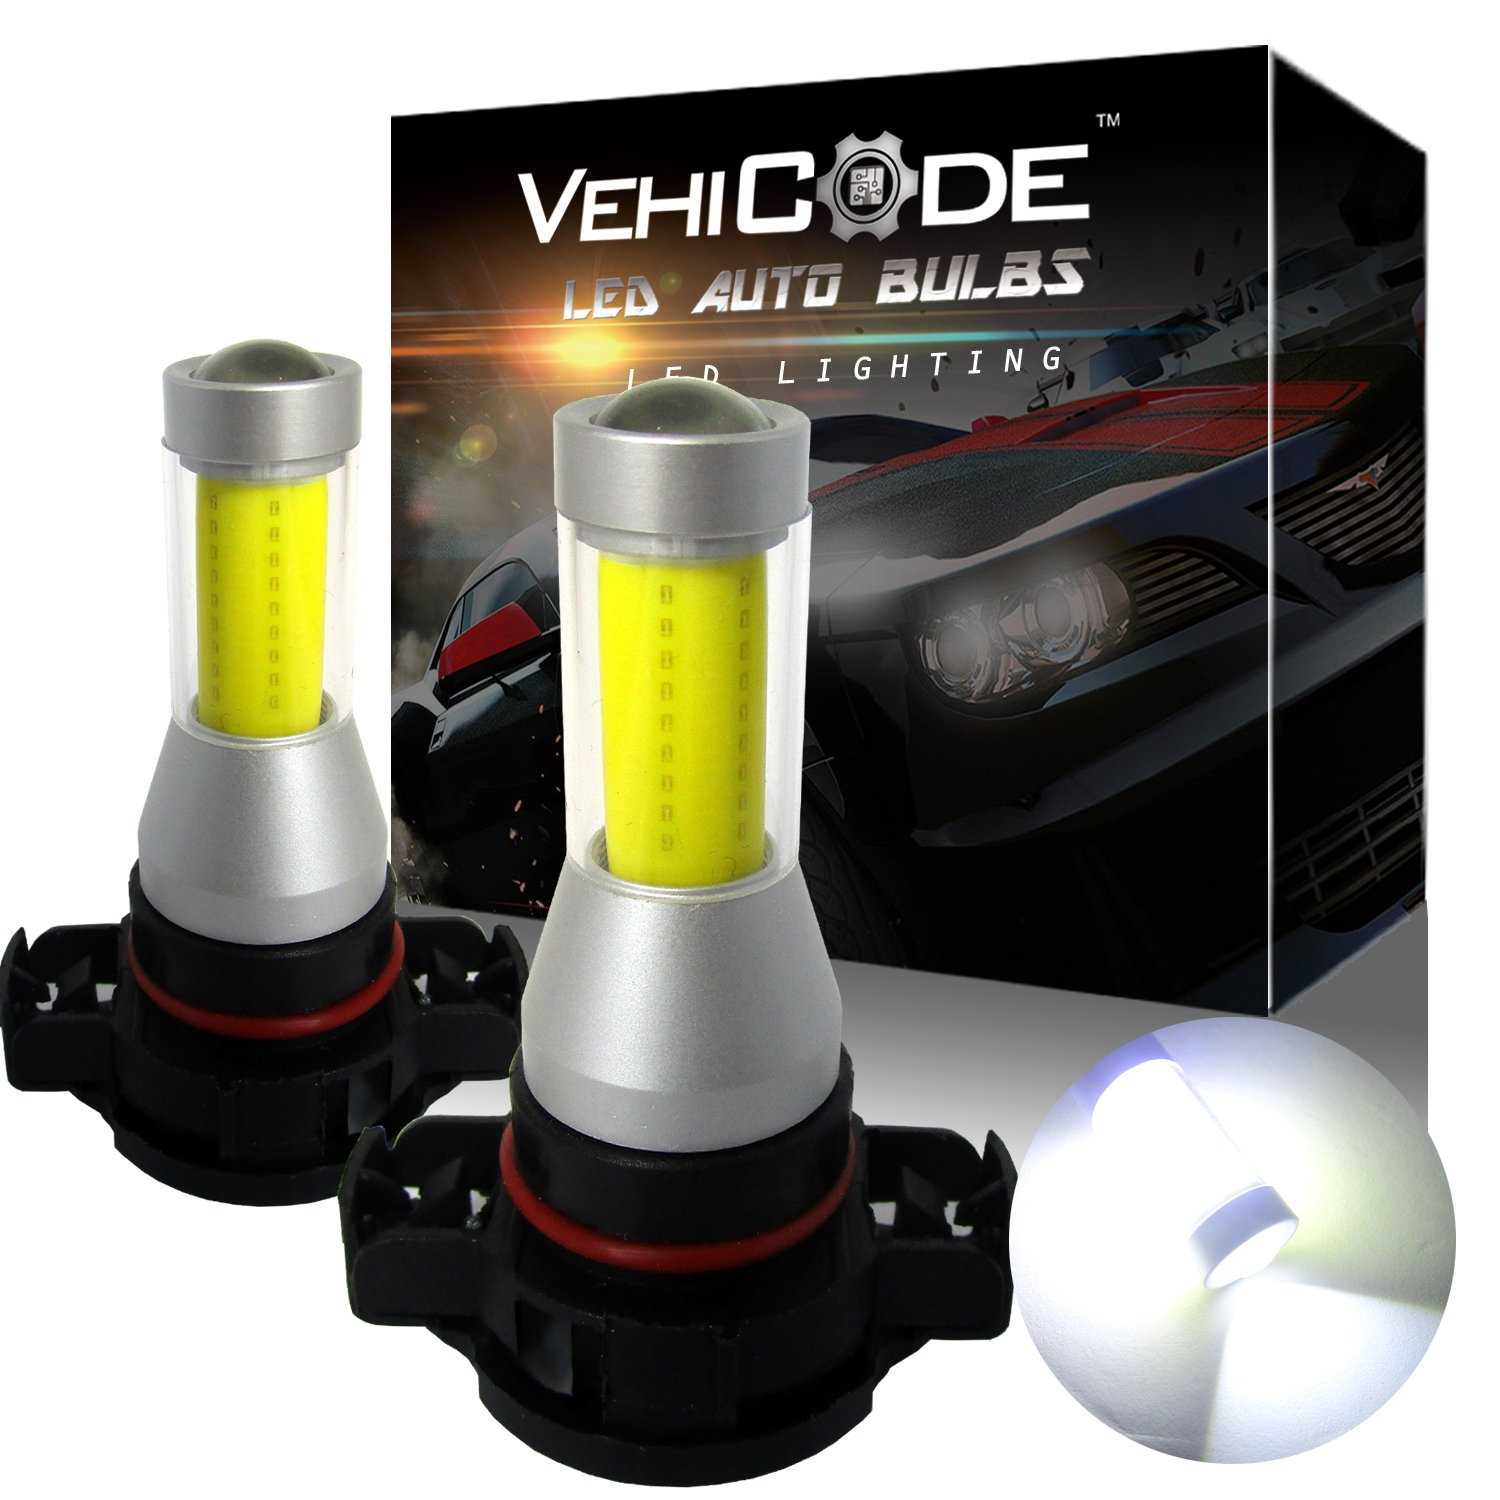 VehiCode Super Bright 2000 Lumens 880 899 893 886 894 3000K Gold Yellow 2 Pack 360 Degree w//Projector Fanless Plug-N-Play Replacement LED Fog Light Bulbs//DRL Kit High Power COB